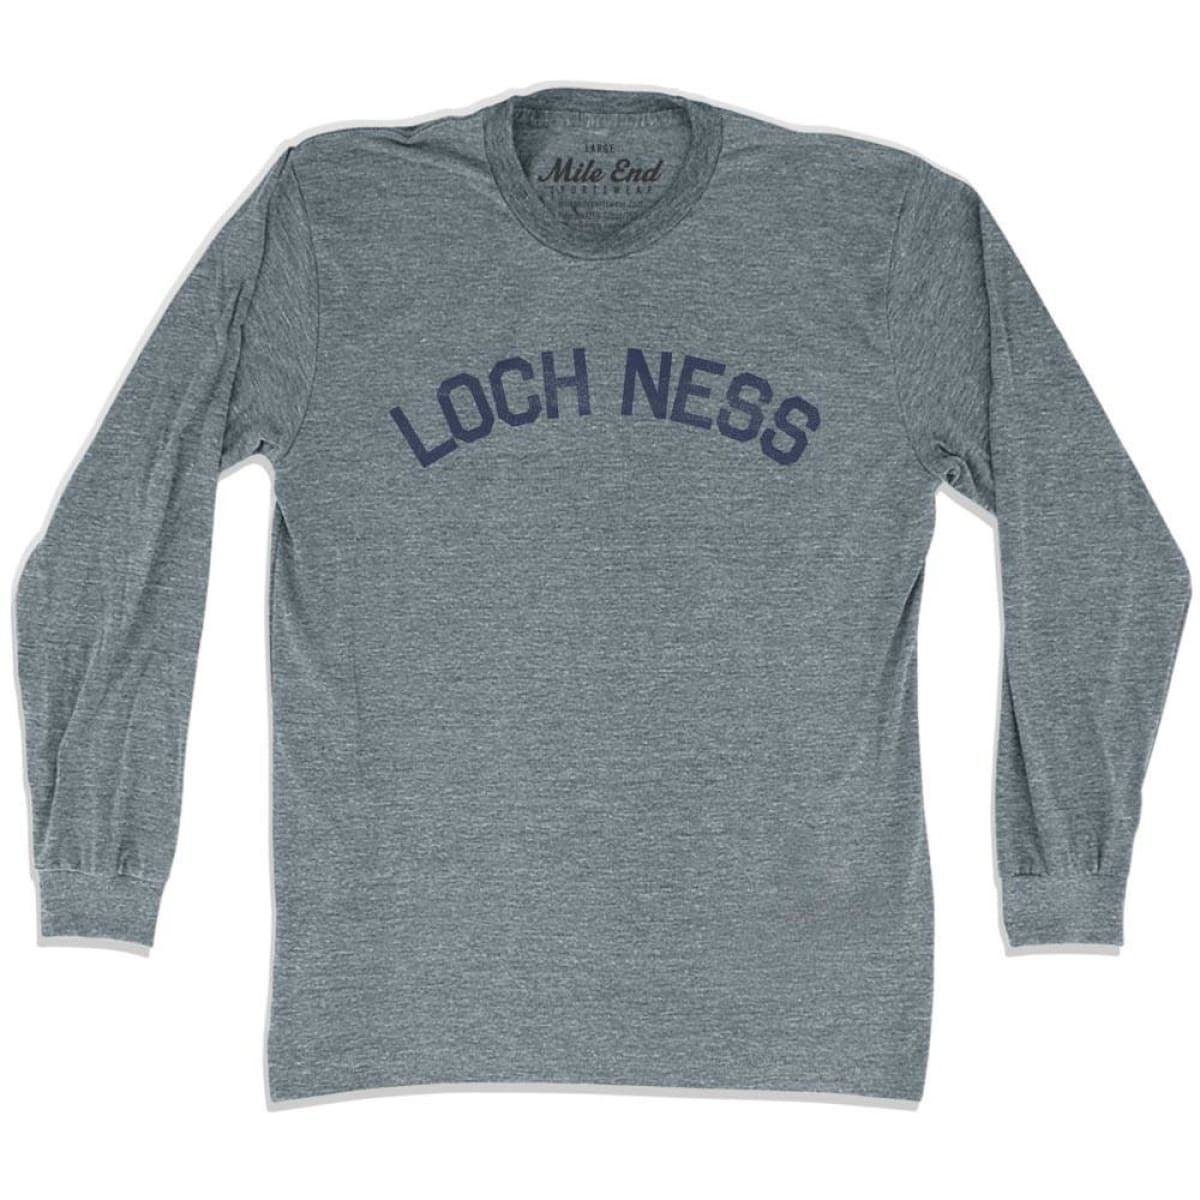 Loch Ness City Long Sleeve Vintage T-shirt - Athletic Grey / Adult X-Small - Mile End City